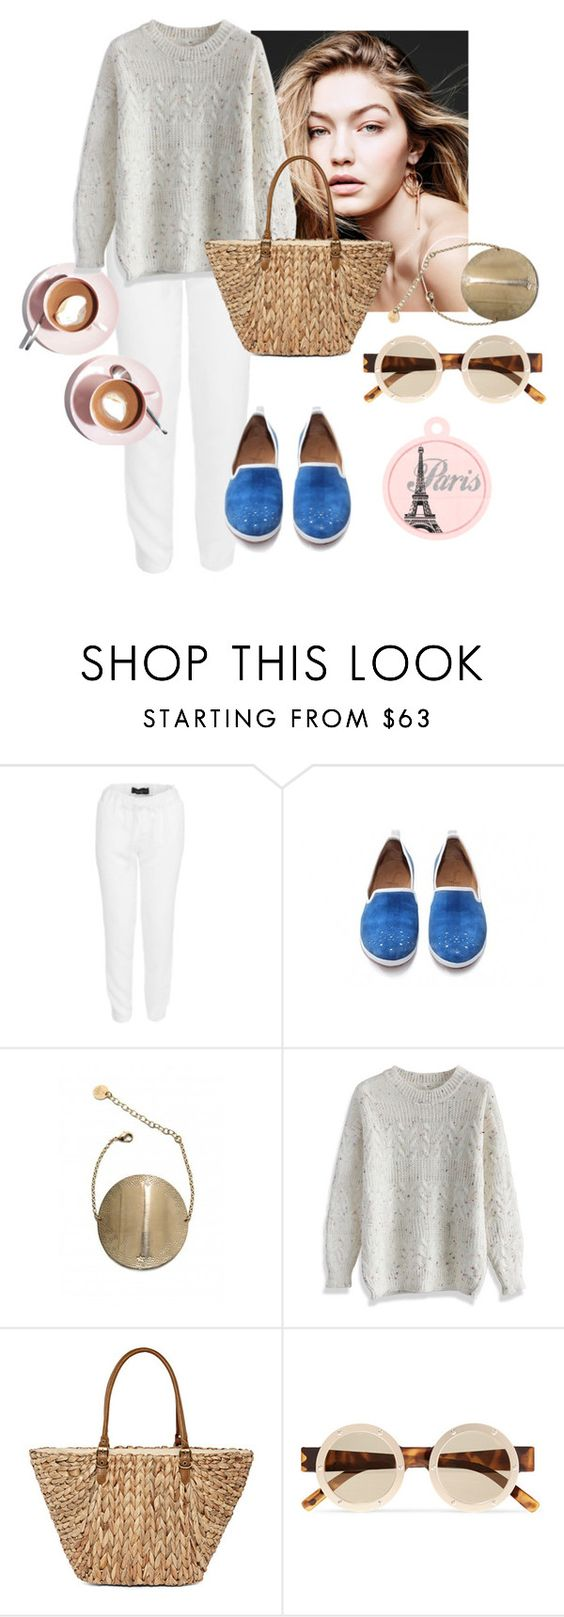 """""""CASUAL PARIS"""" by kreateurs ❤ liked on Polyvore featuring Constance Boutet, Martha Stewart, Chicwish, Straw Studios and Le Specs"""